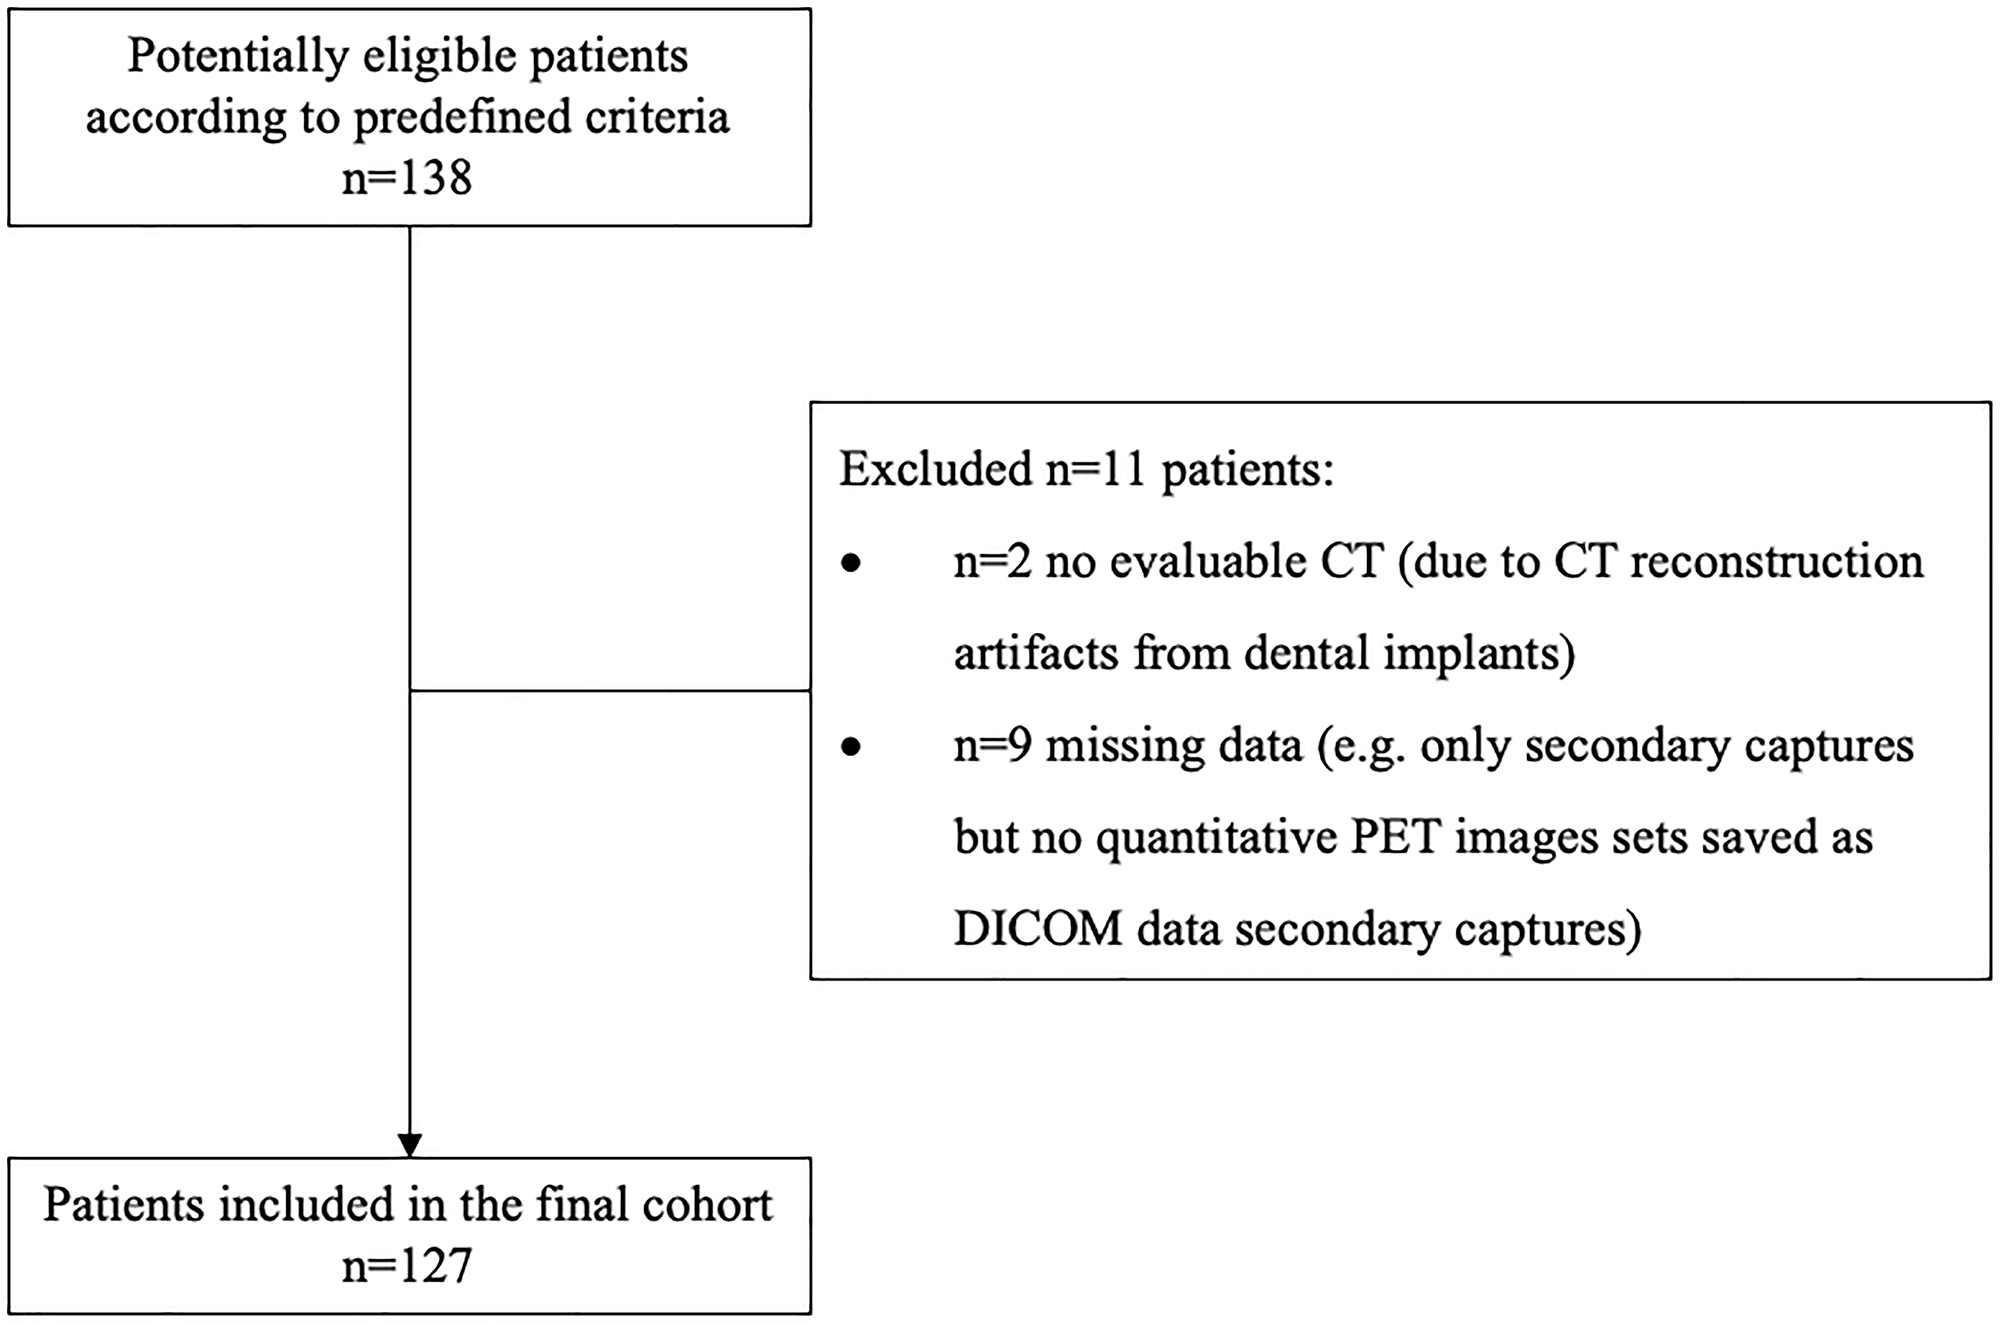 STARD (Standards for Reporting of Diagnostic Accuracy Studies) flow diagram.